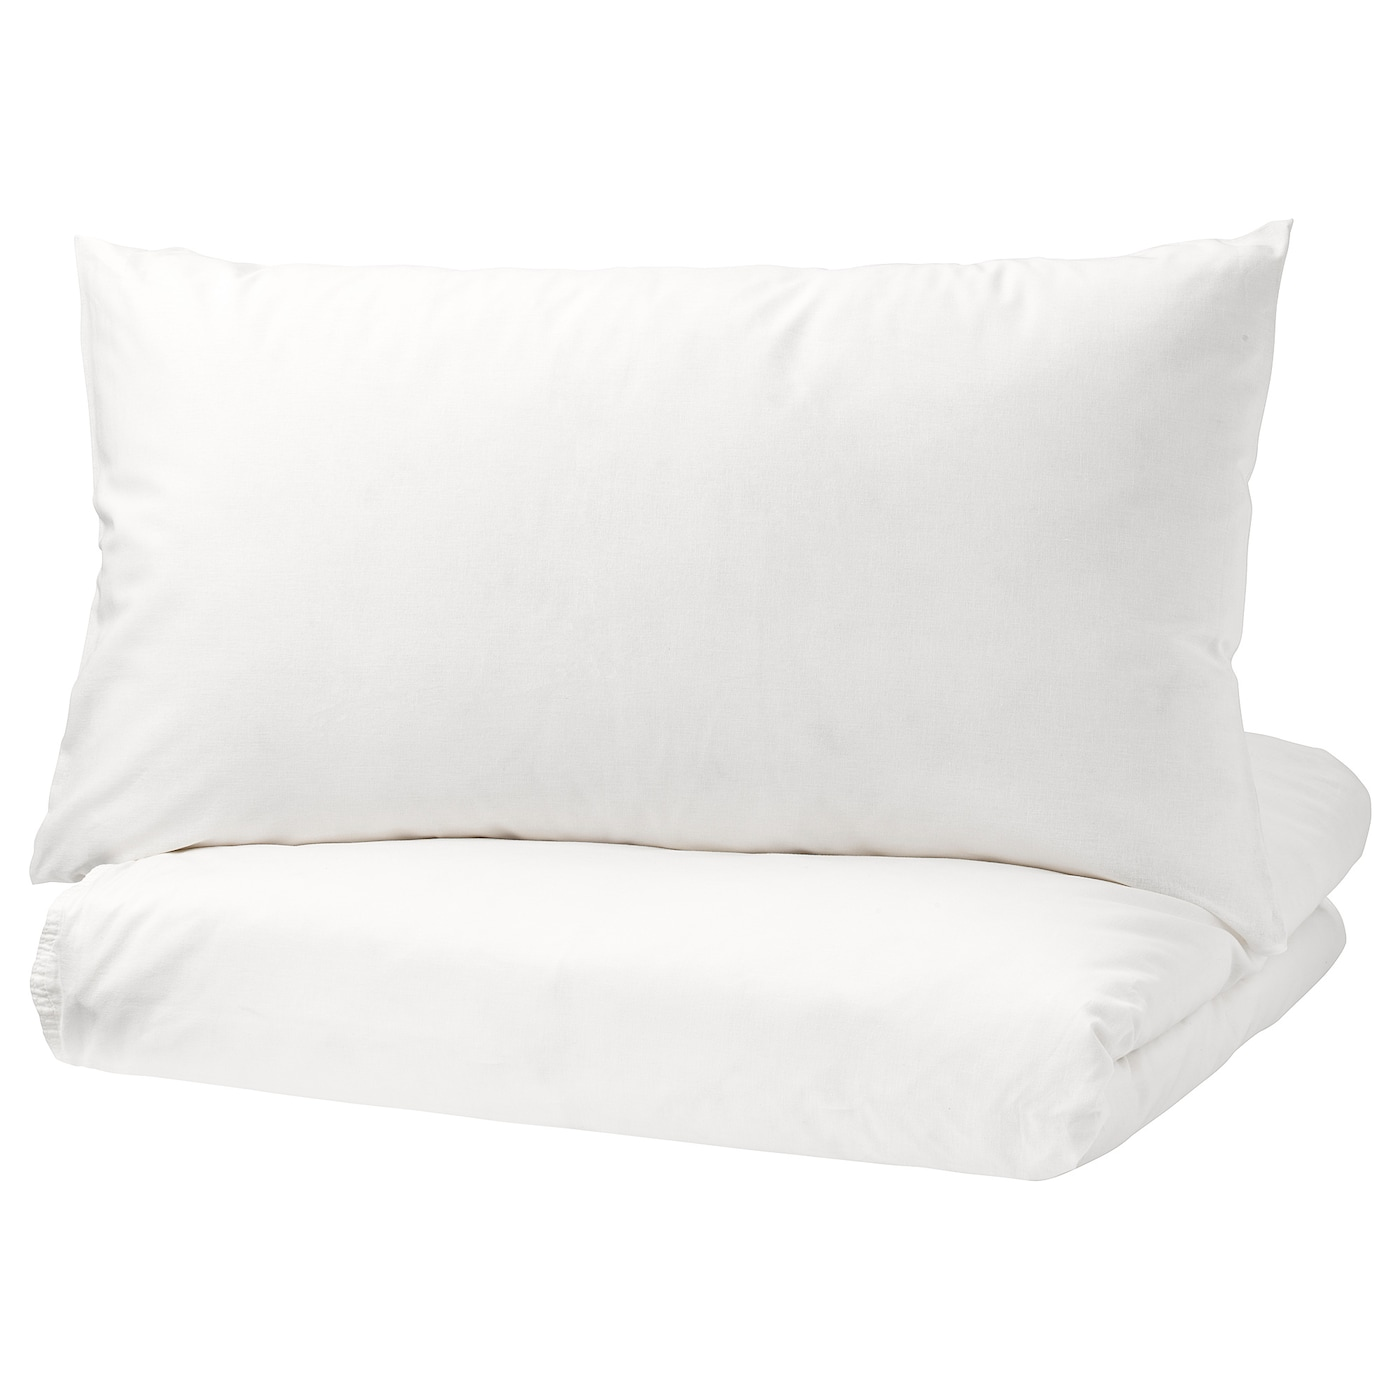 IKEA ÄNGSLILJA quilt cover and pillowcase Pure cotton that feels soft and nice against your skin.